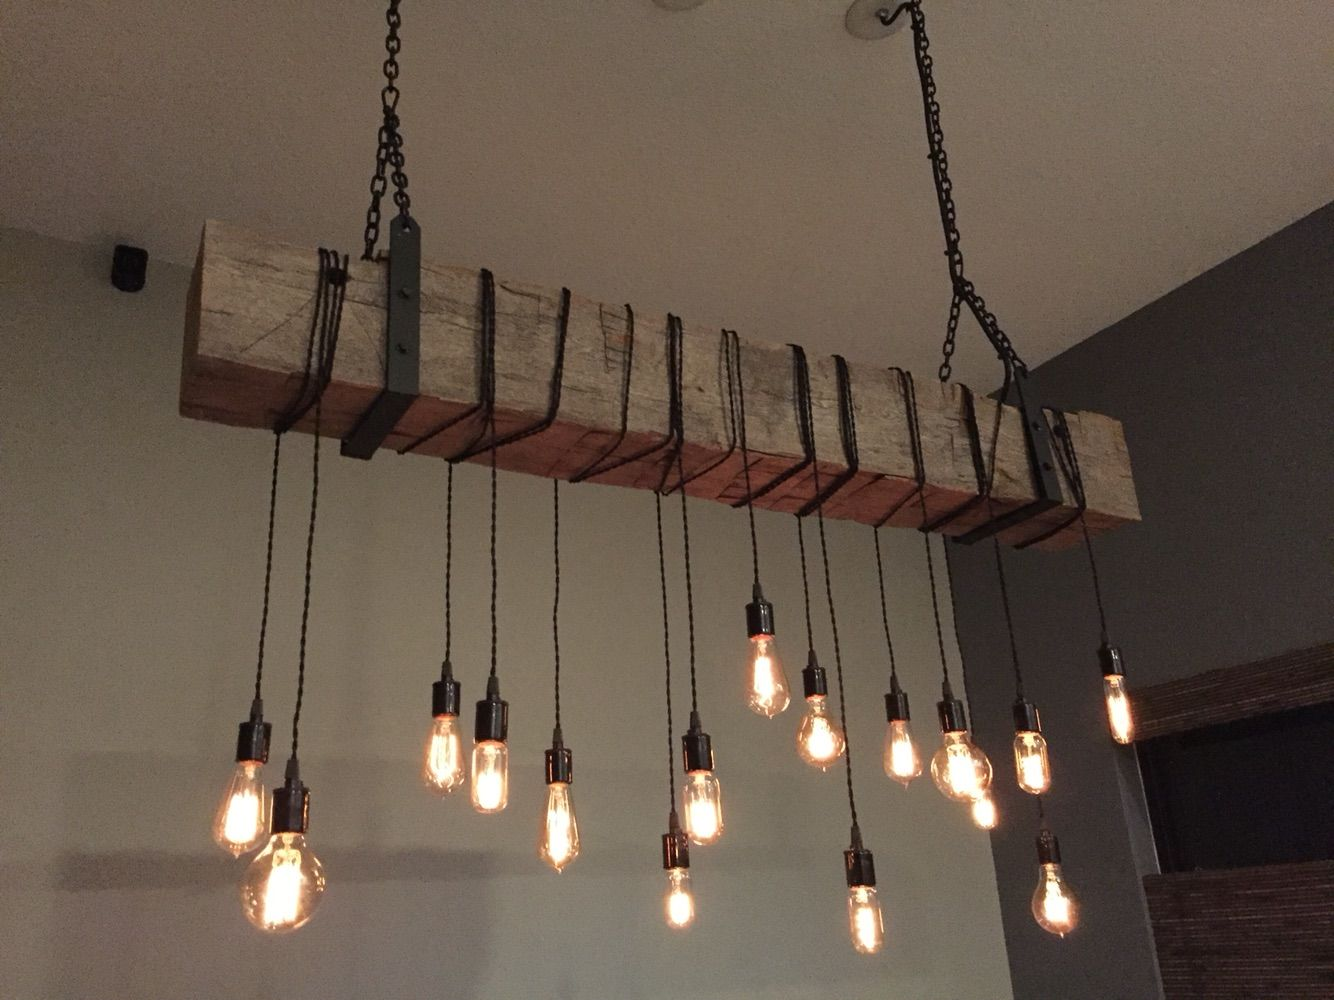 Buy a custom reclaimed barn beam chandelier light fixture modern custom made reclaimed barn beam chandelier light fixture modern industrial rustic restaurant bar aloadofball Choice Image